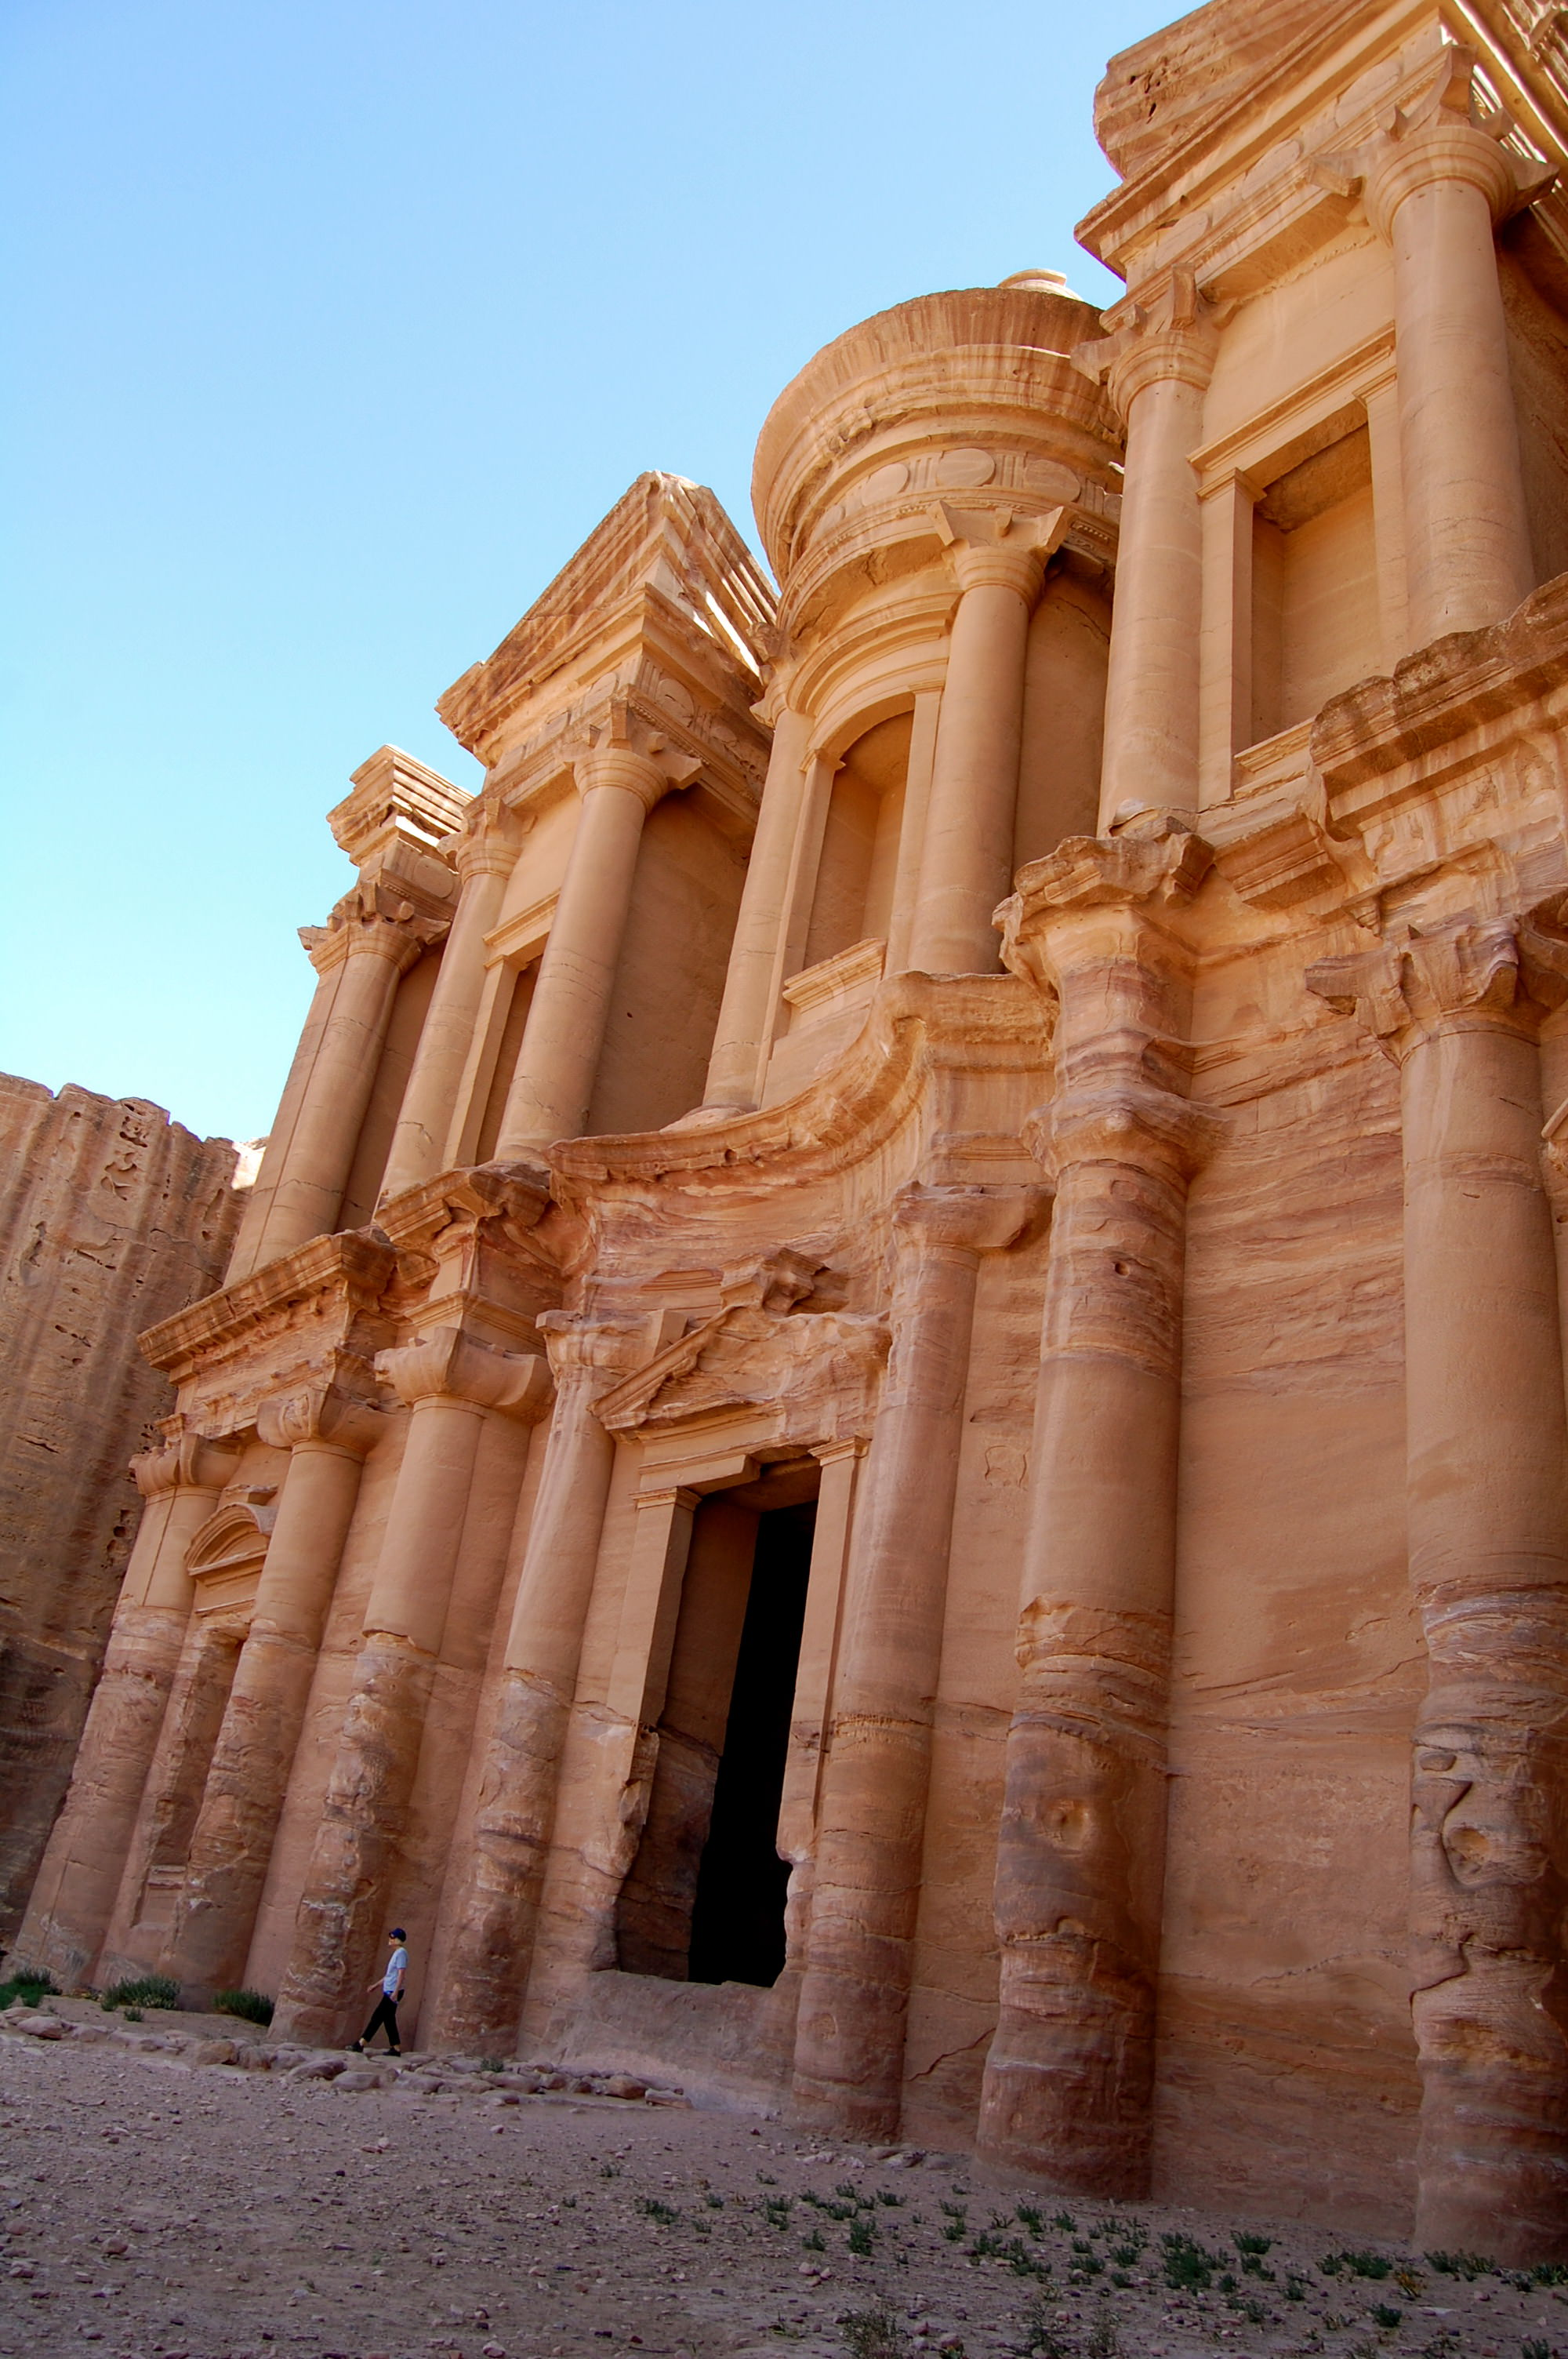 View of the Monastery, Petra